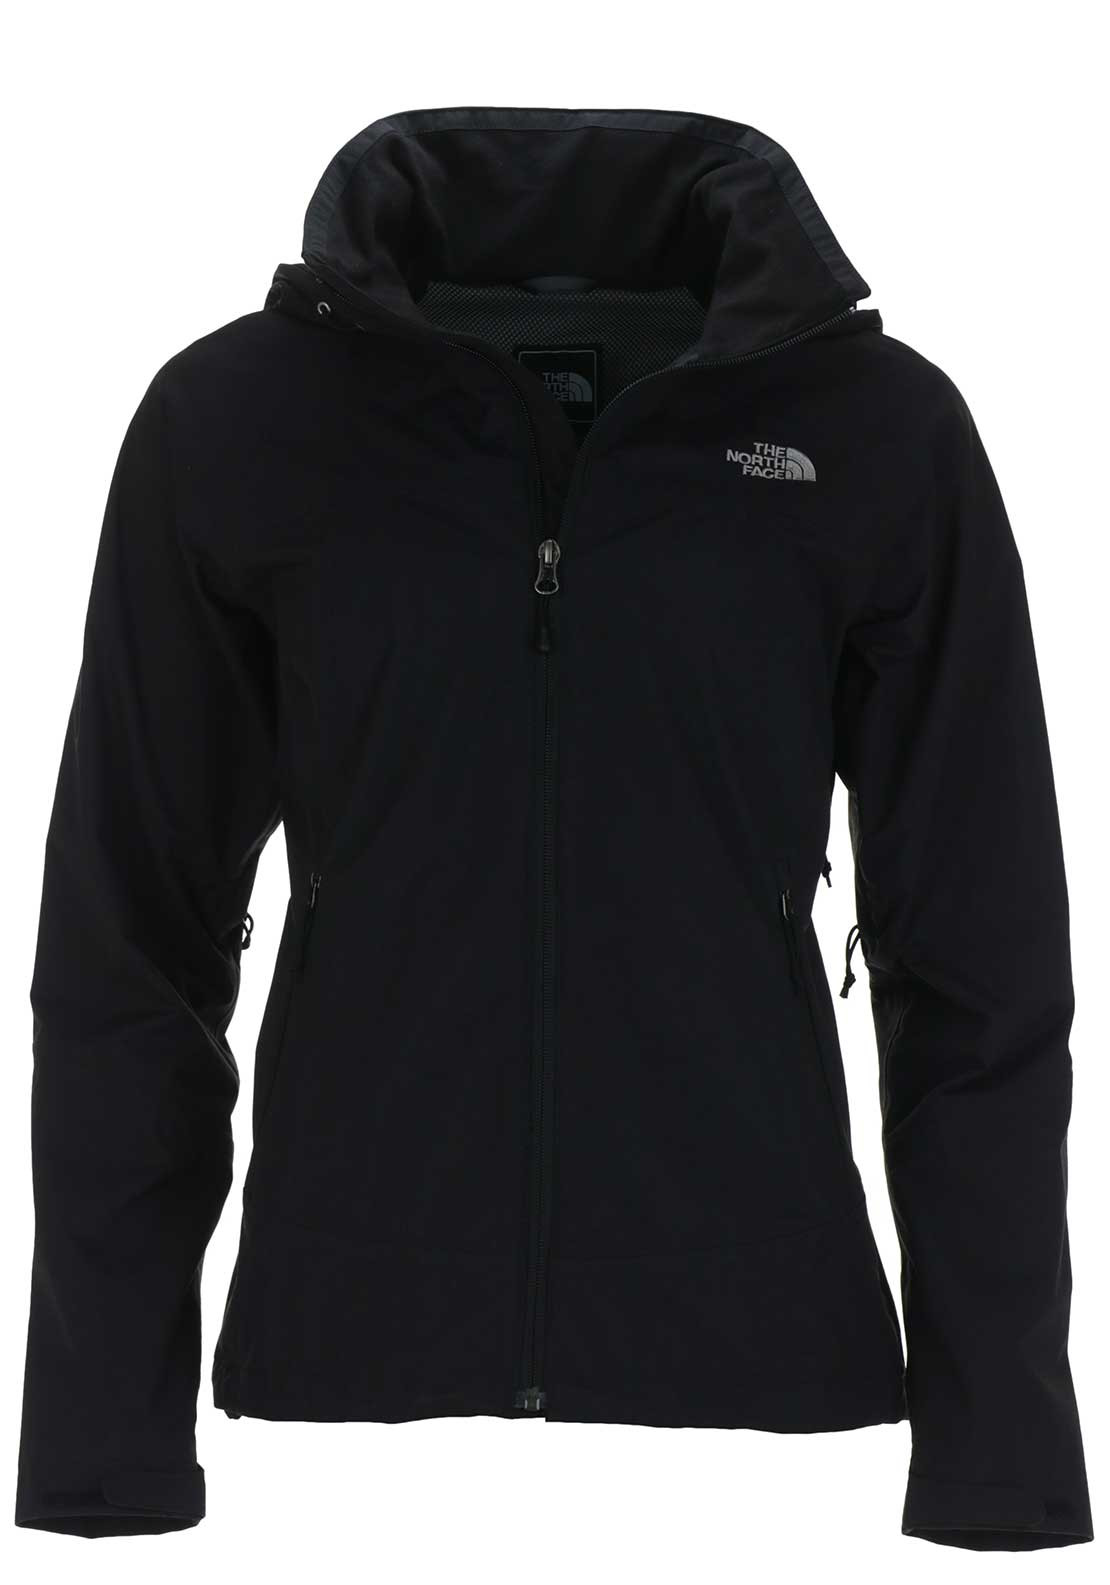 The North Face Womens Stratos Jacket, Black